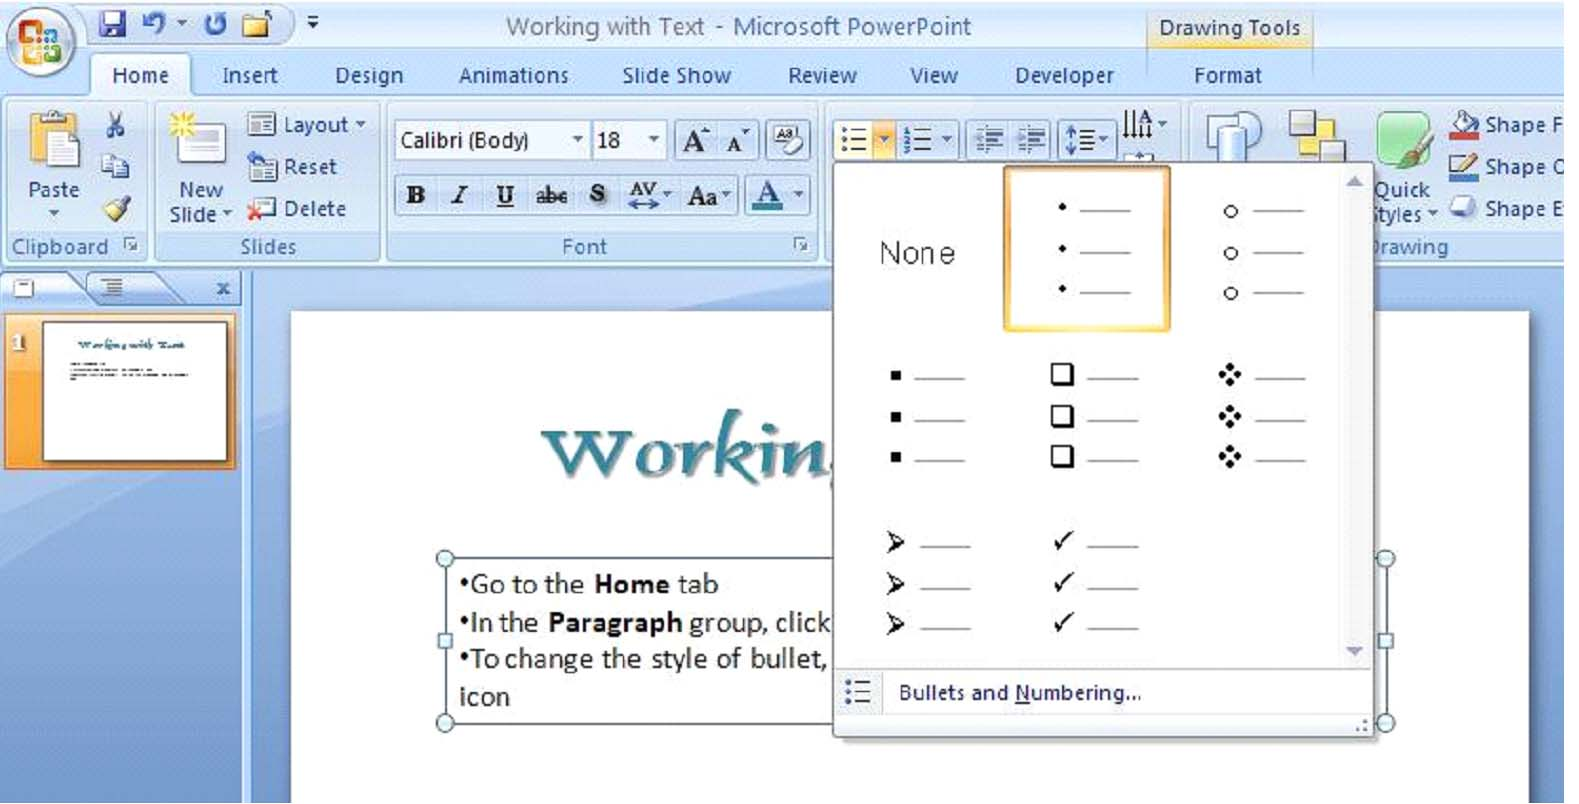 How to Work with Text in PowerPoint 2007 | UniversalClass